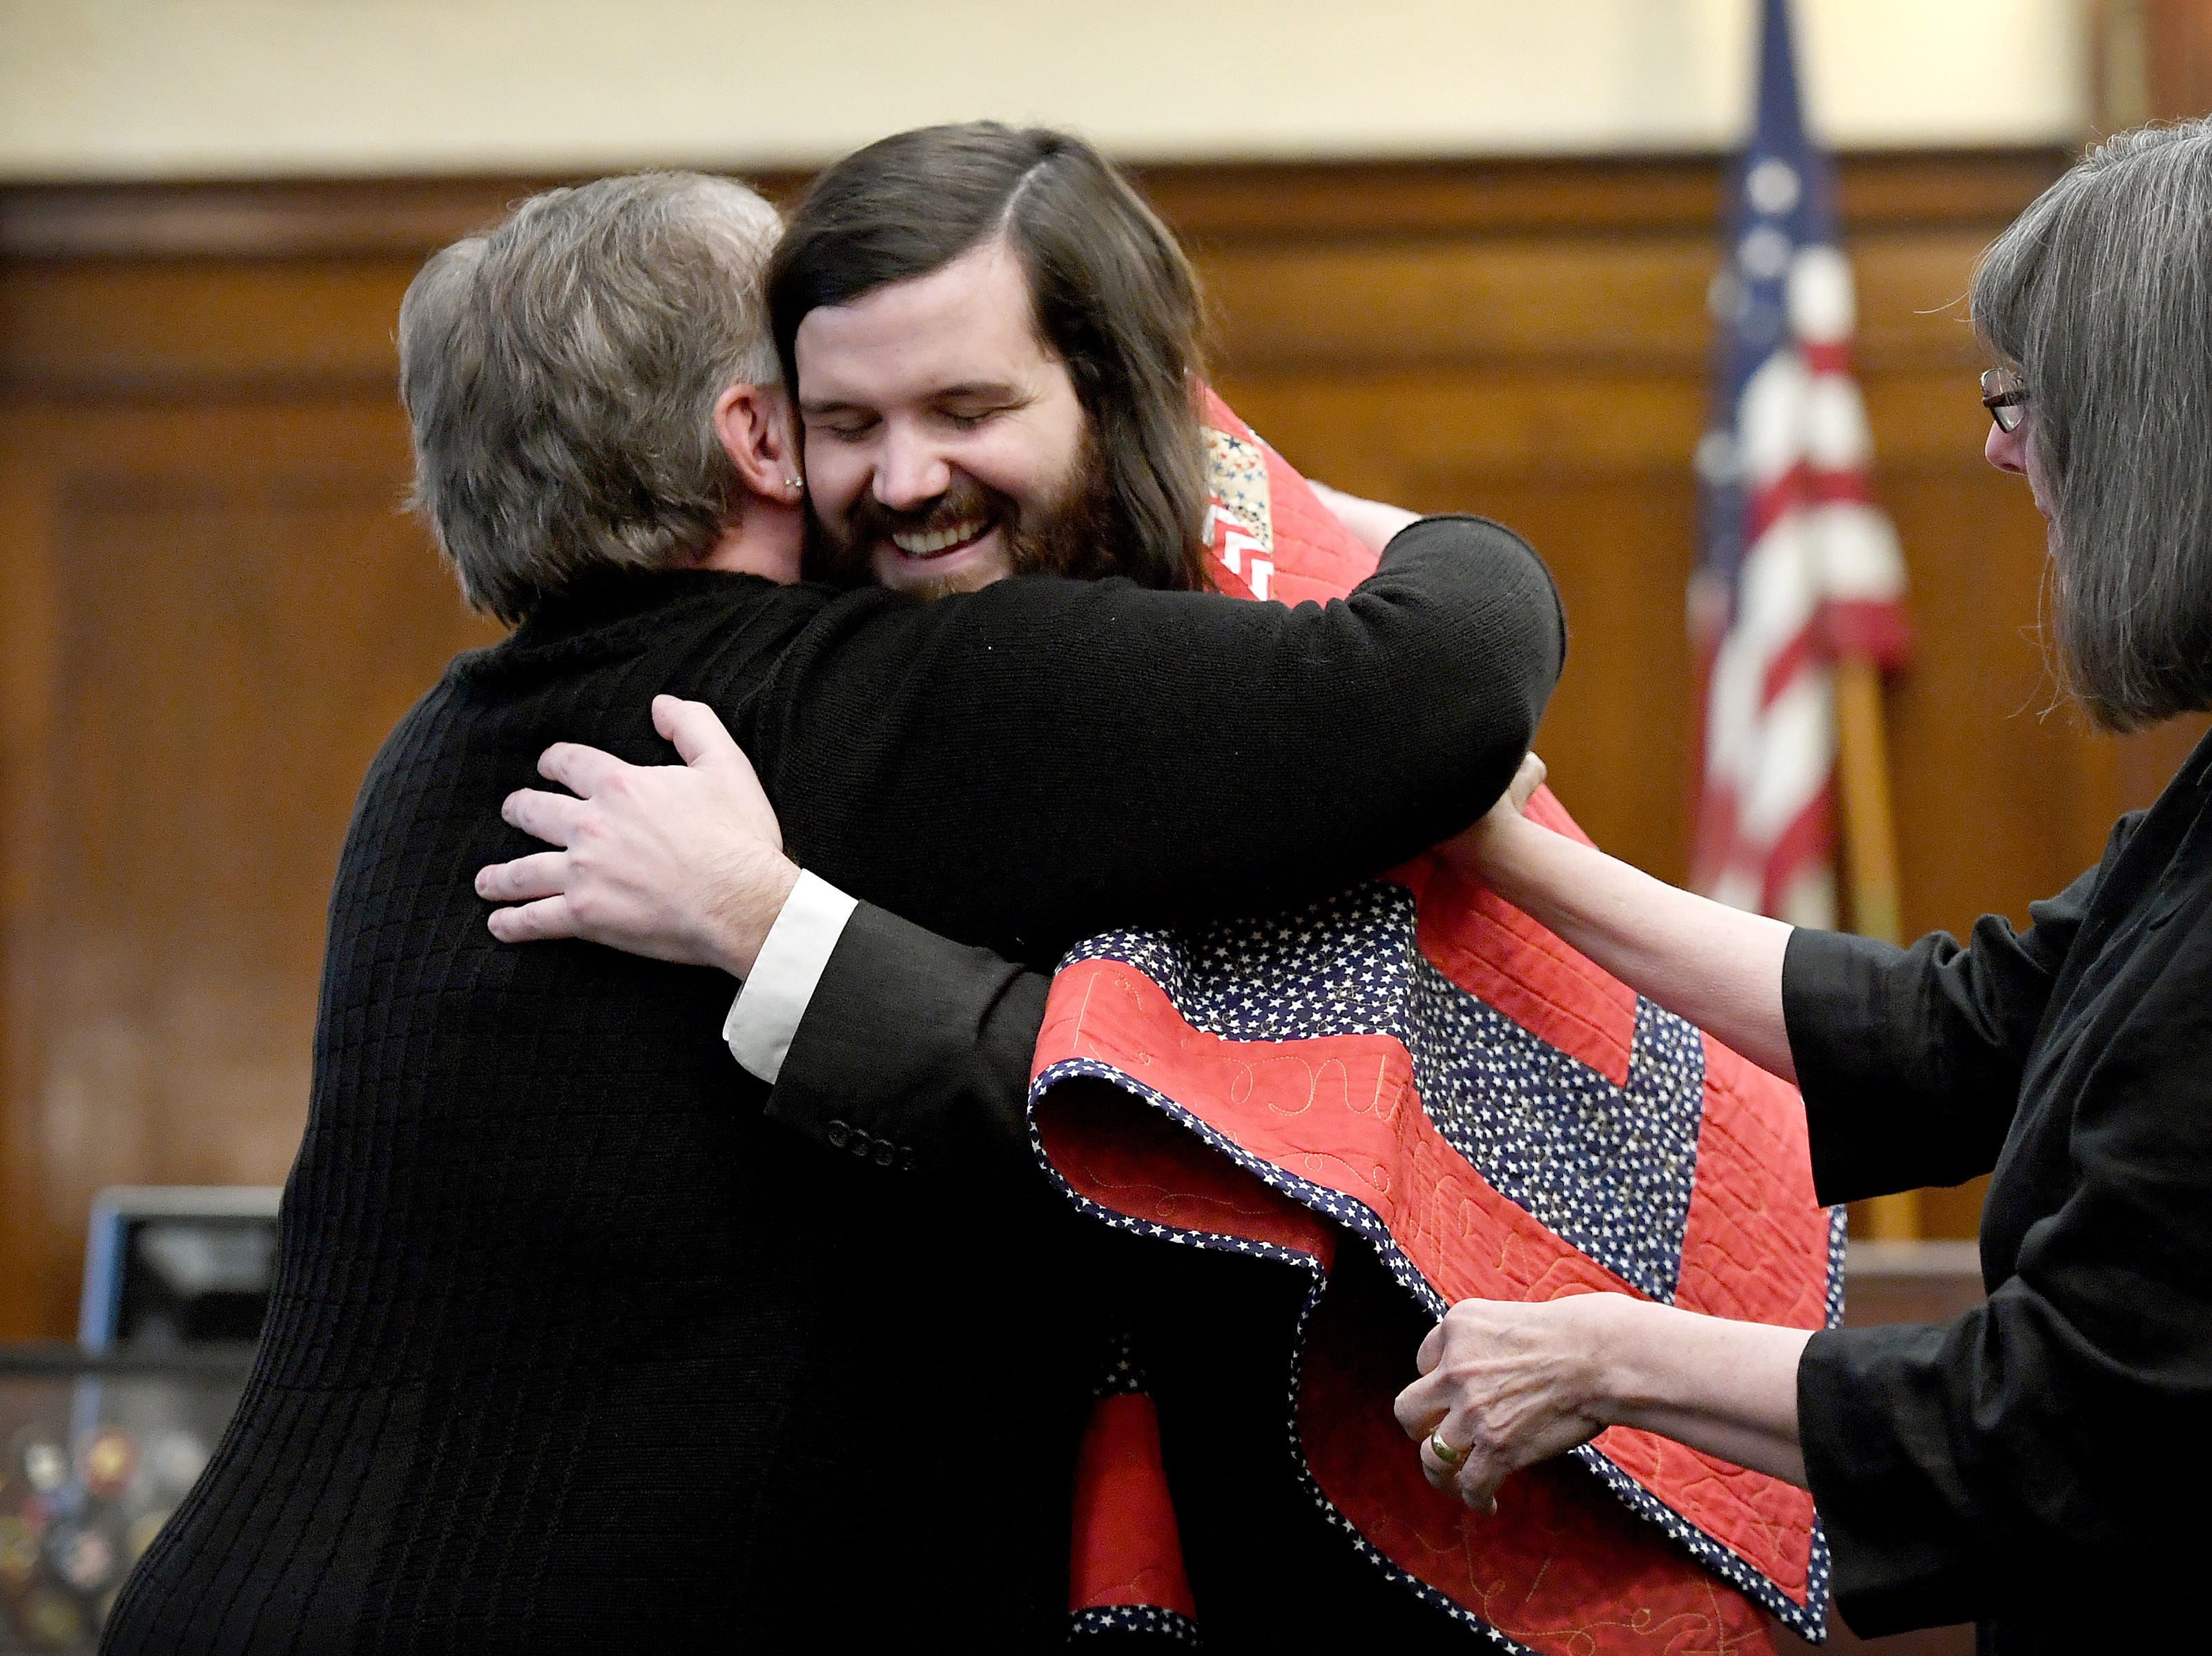 Kevin Rumley is presented with a quilt from the Welcome Home Sewing Group of the Quilts of Valor Foundation by Kerry Bonnville, left, and Melanie Greenway during the Buncombe County Veterans Treatment Court graduation ceremony on Friday, Jan. 19, 2018.